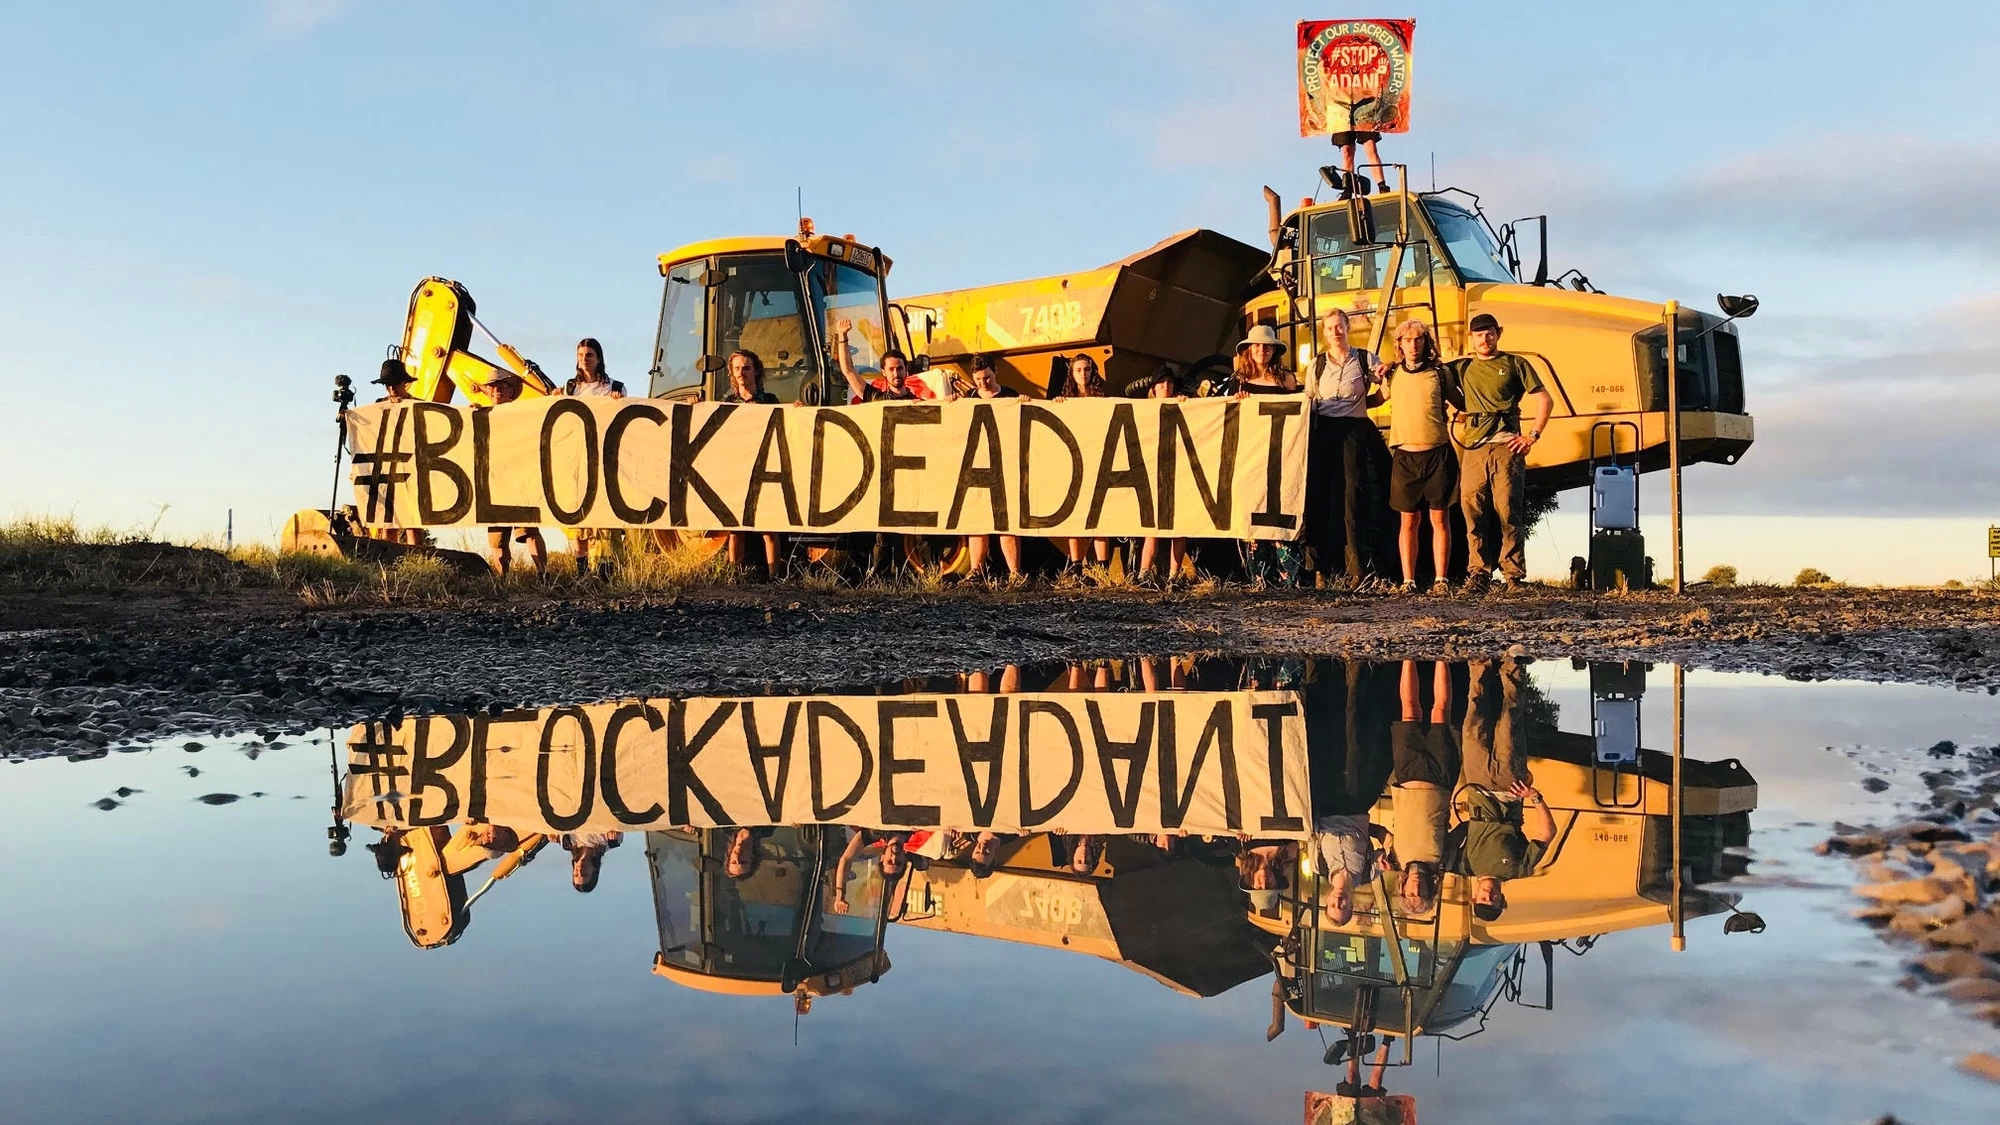 Politicians have no clue what effect Adani will have on water: expert